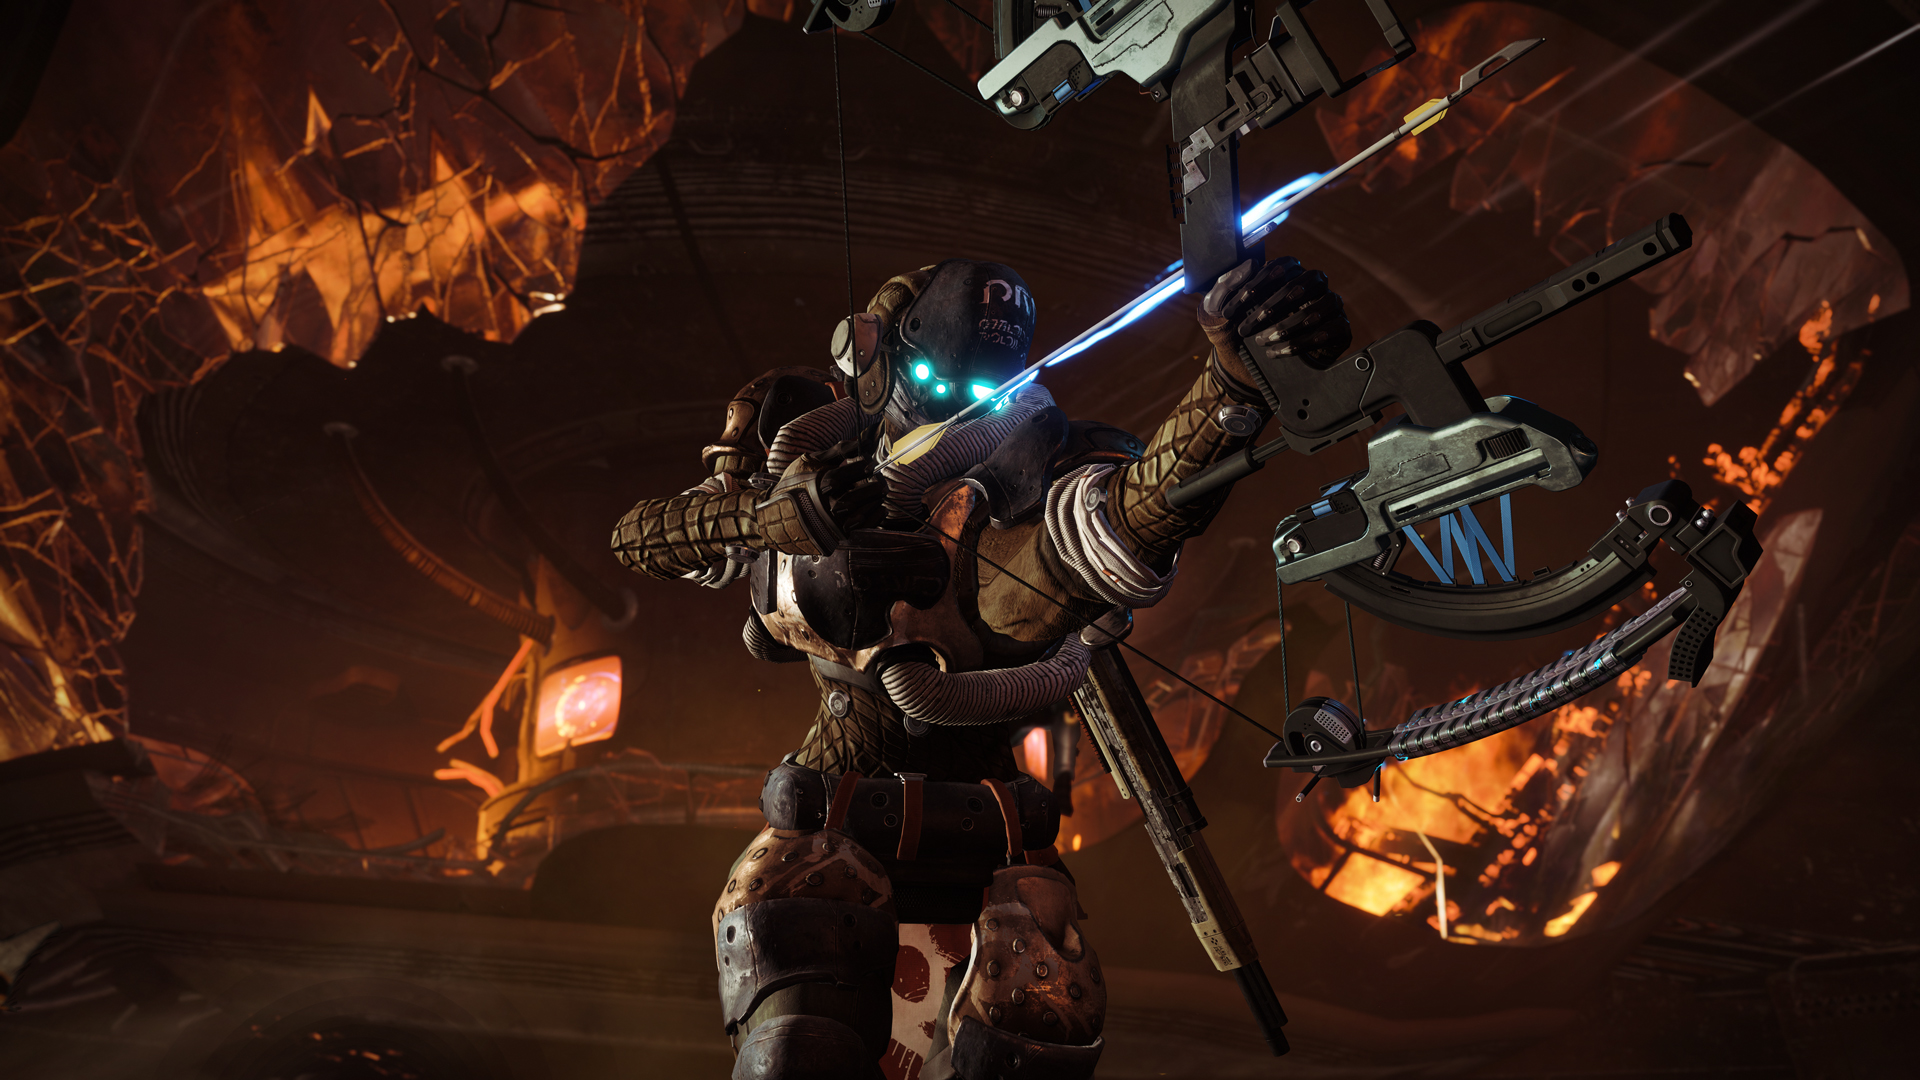 Earn free Destiny loot in the new Bungie Rewards programme